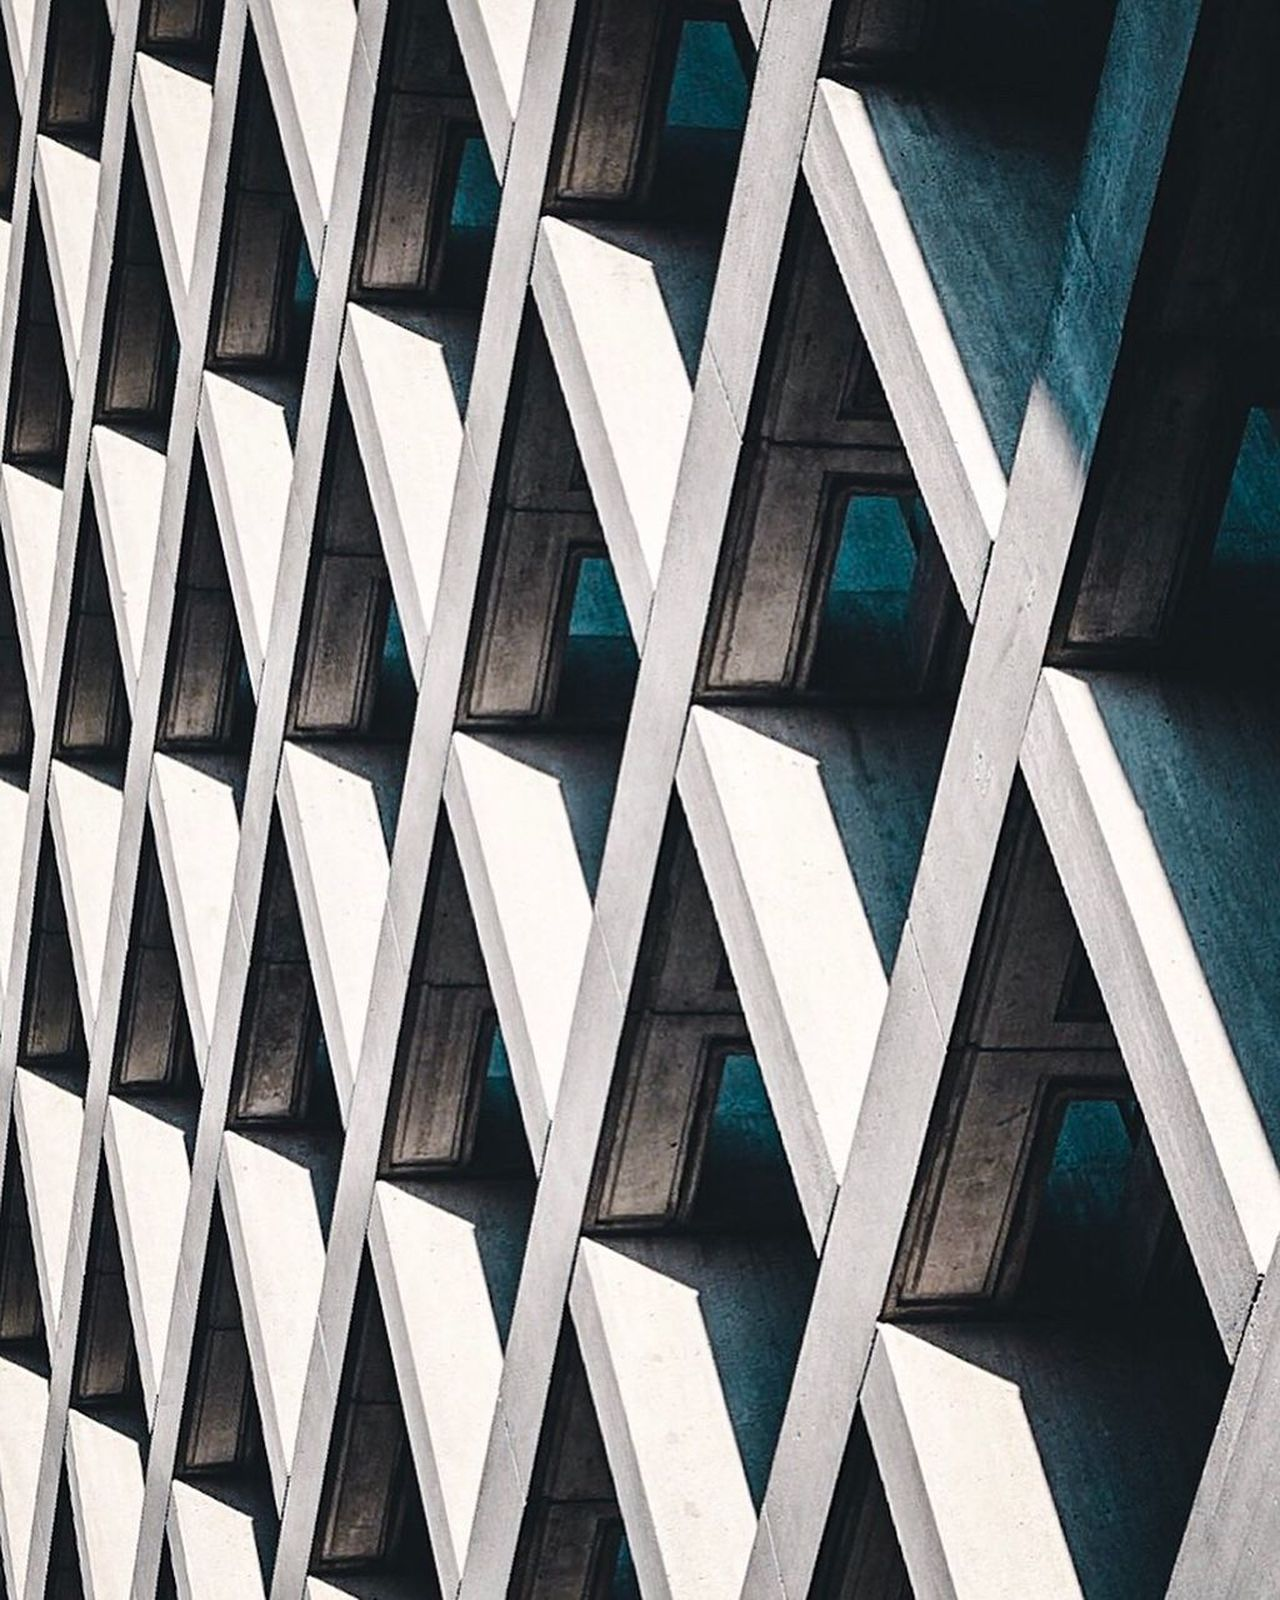 architecture, full frame, built structure, geometric shape, backgrounds